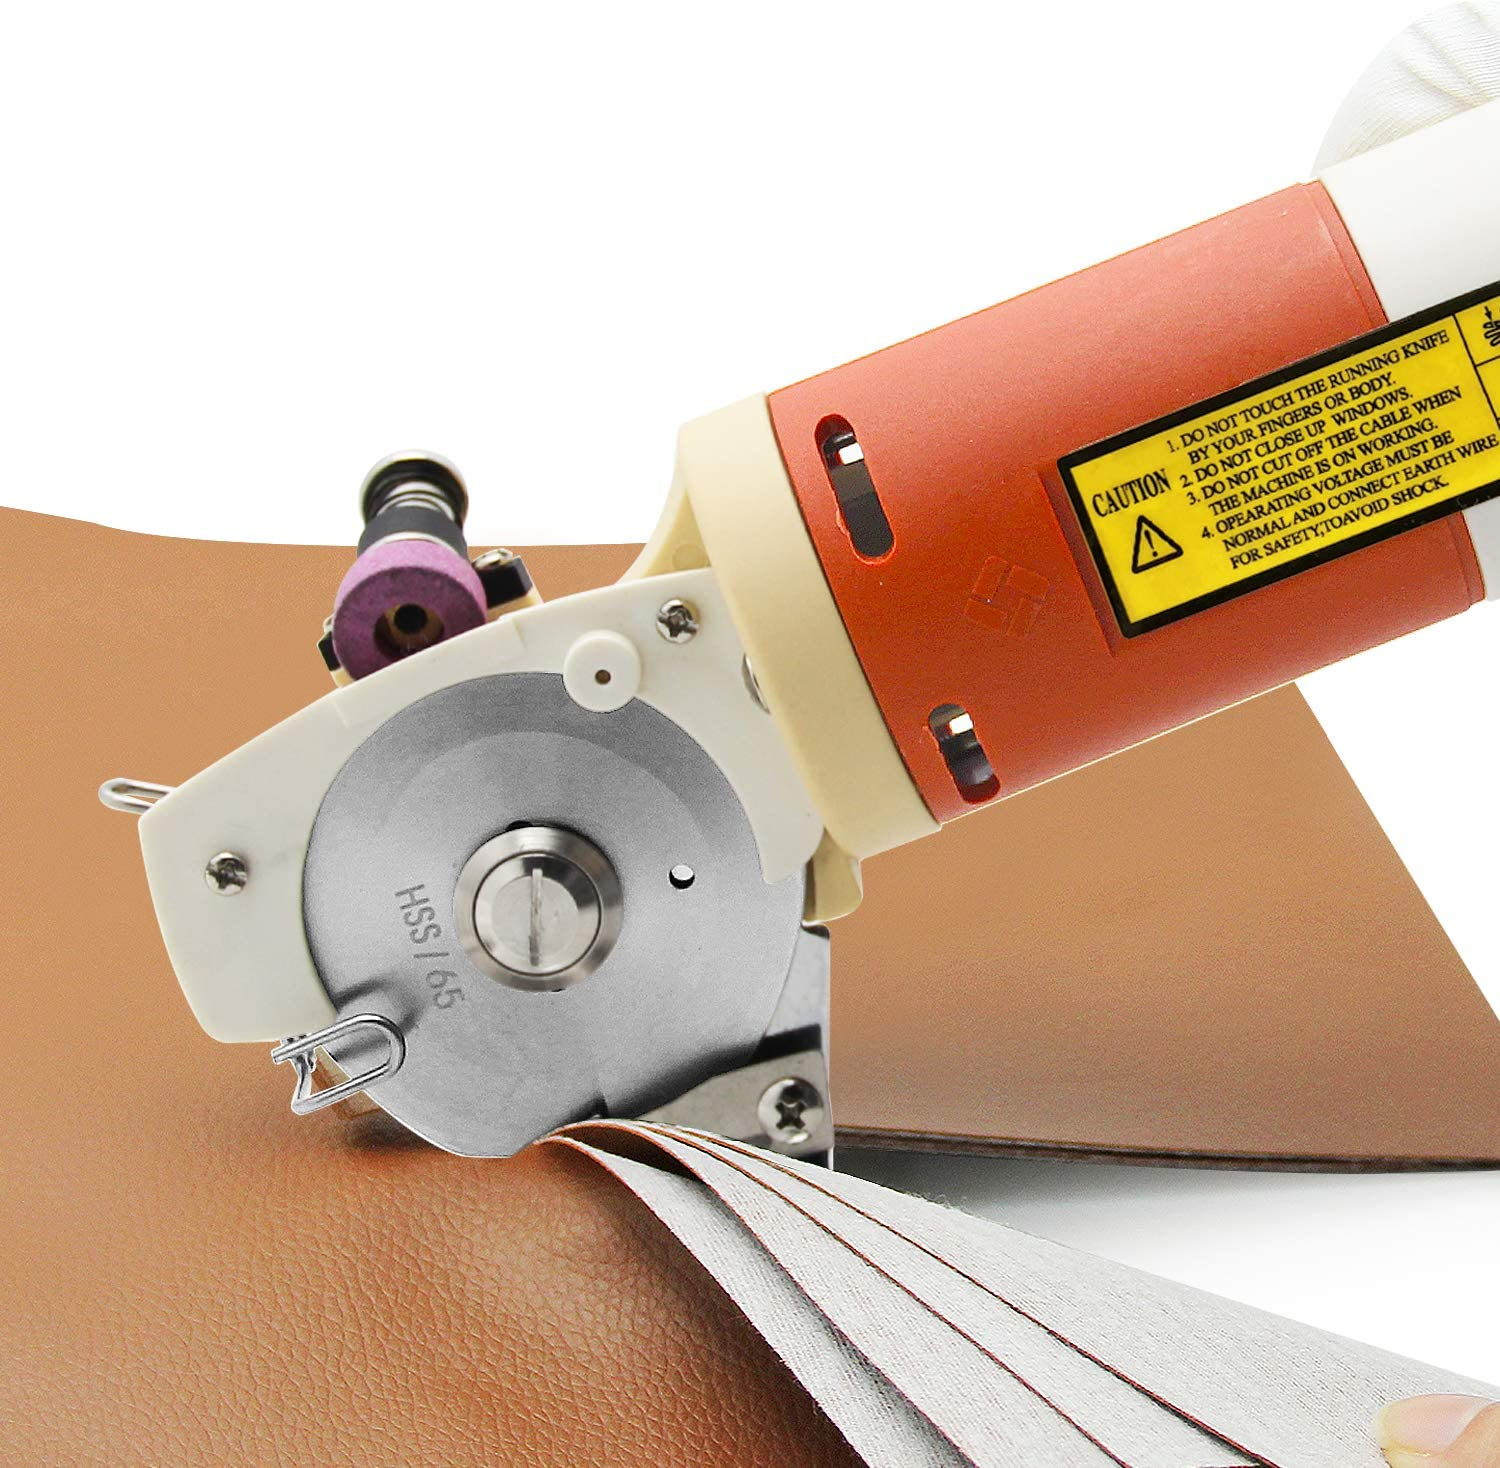 CGOLDENWALL YJ-65 Electric Rotary Fabric Cutter Scissors Cloth Cutting Machine Blade Size: 65mm Maximum Cutting Thickness: 22mm Ideal for Multi-Layer Clothing Textile Leather Paper with Spare Blade 81LkLycxQnLSL1500_